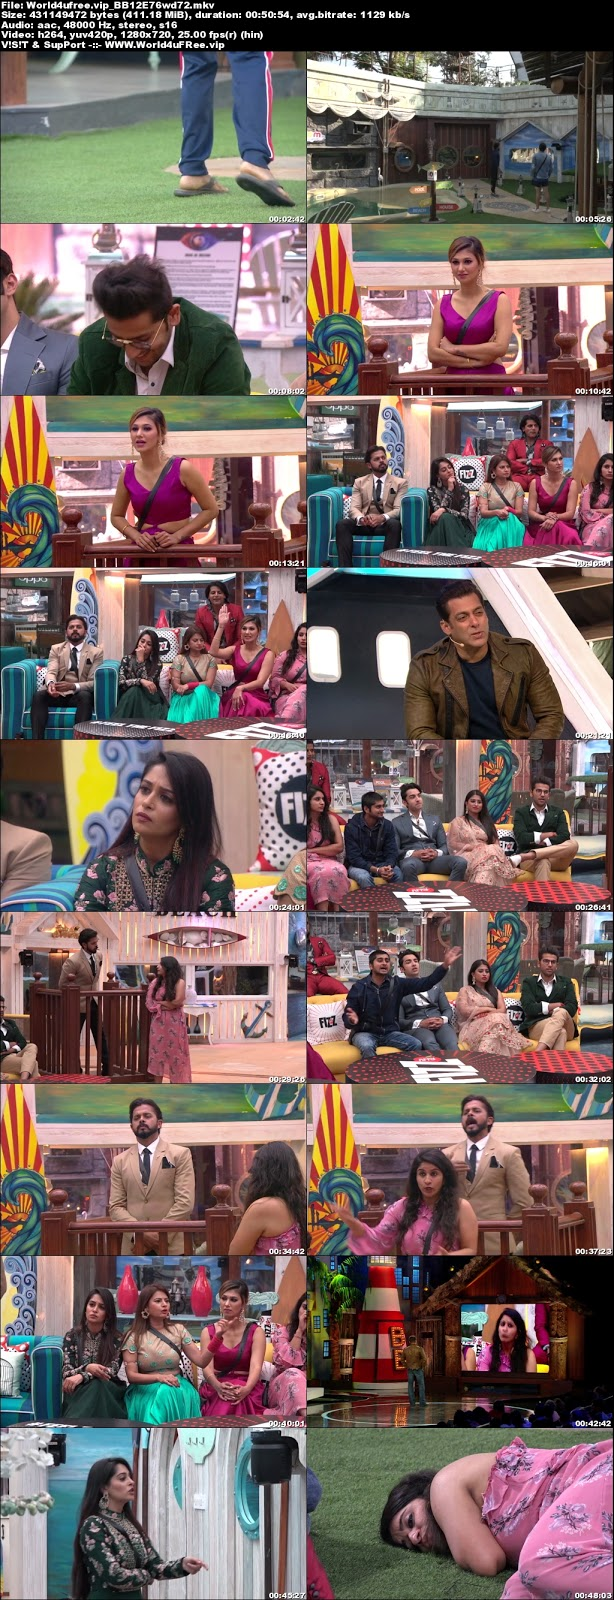 Bigg Boss 12 Episode 76 01 December 2018 720p WEBRip 400Mb x264 world4ufree.fun tv show Bigg Boss 12 Download Episode 76 01  november 2018 world4ufree.fun 400mb 720p HD  free download or watch online at world4ufree.fun